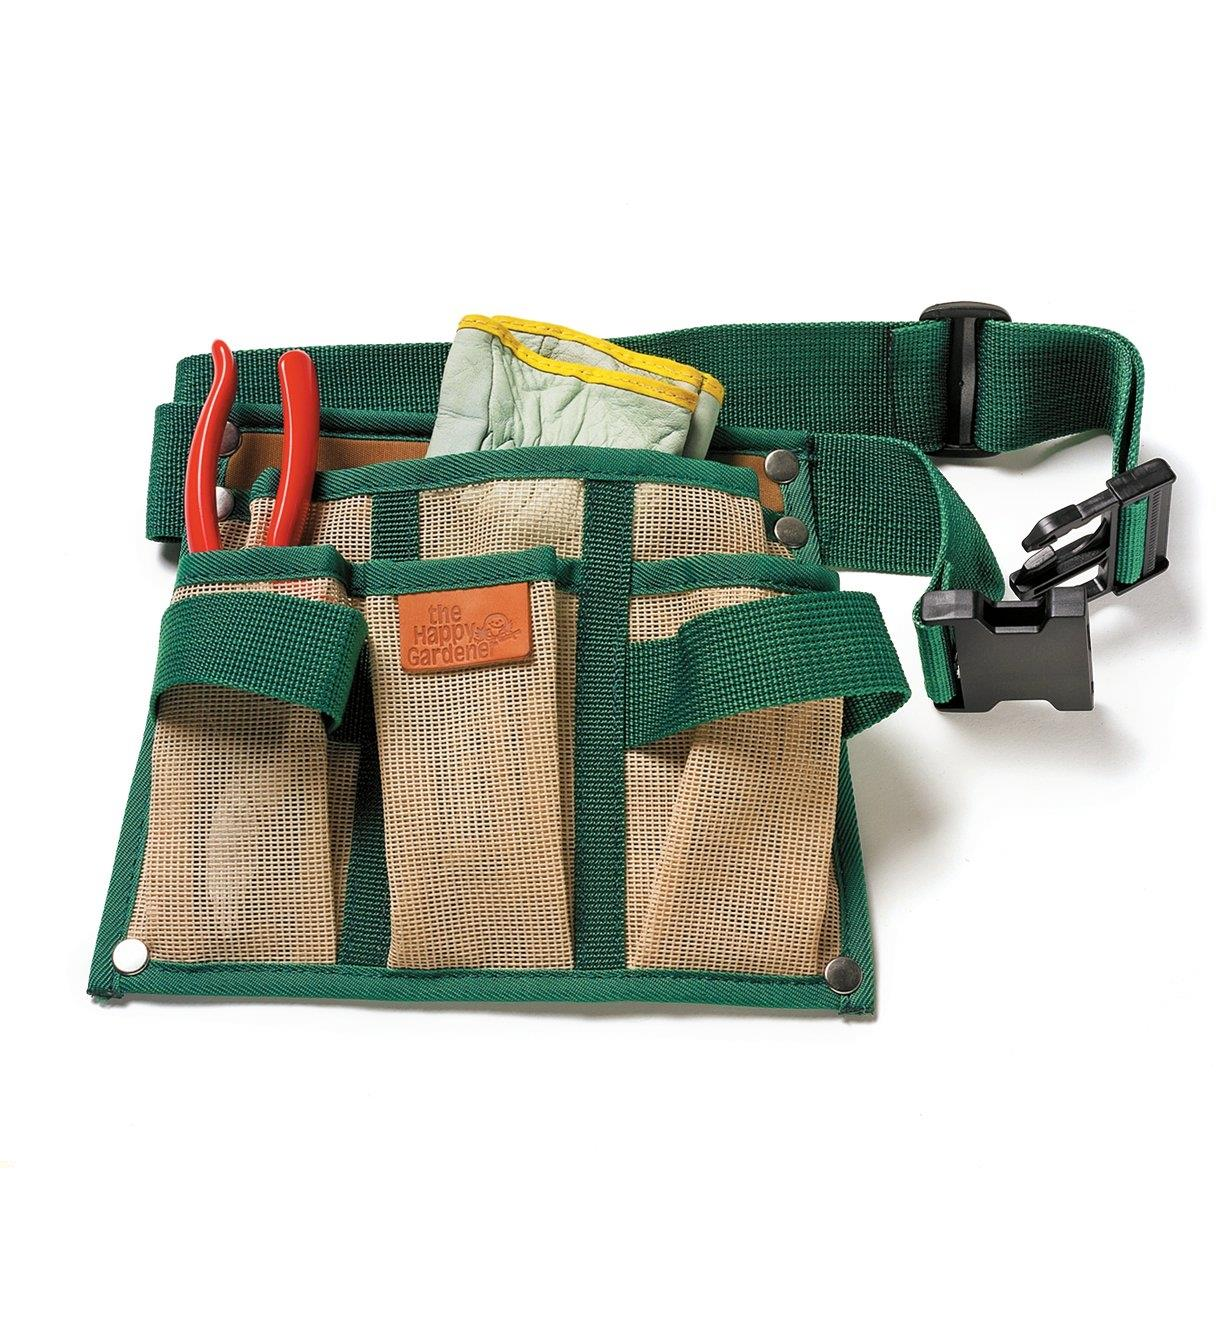 XW103 - 4-Pocket Tool Pouch and Belt